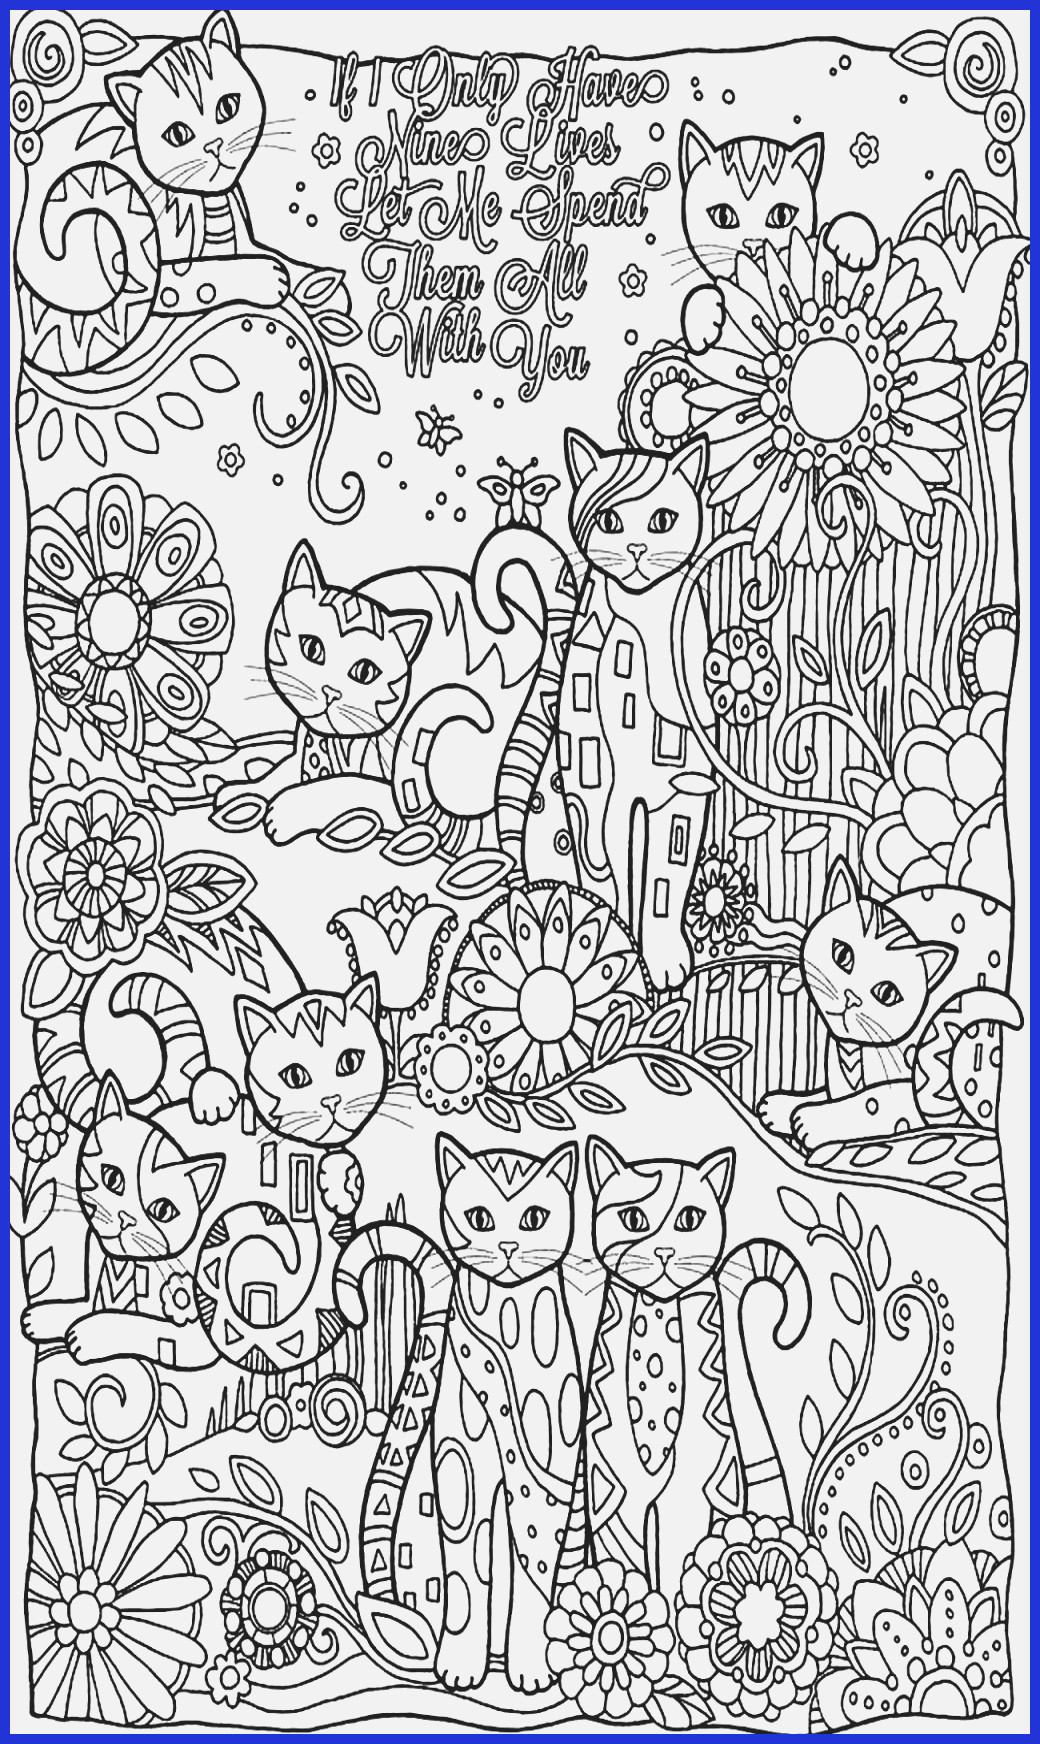 descendants 2 coloring pages Download-Coloring Pages with Words Cute Printable Coloring Pages New Printable Od Dog Coloring Pages Ruva 12-f